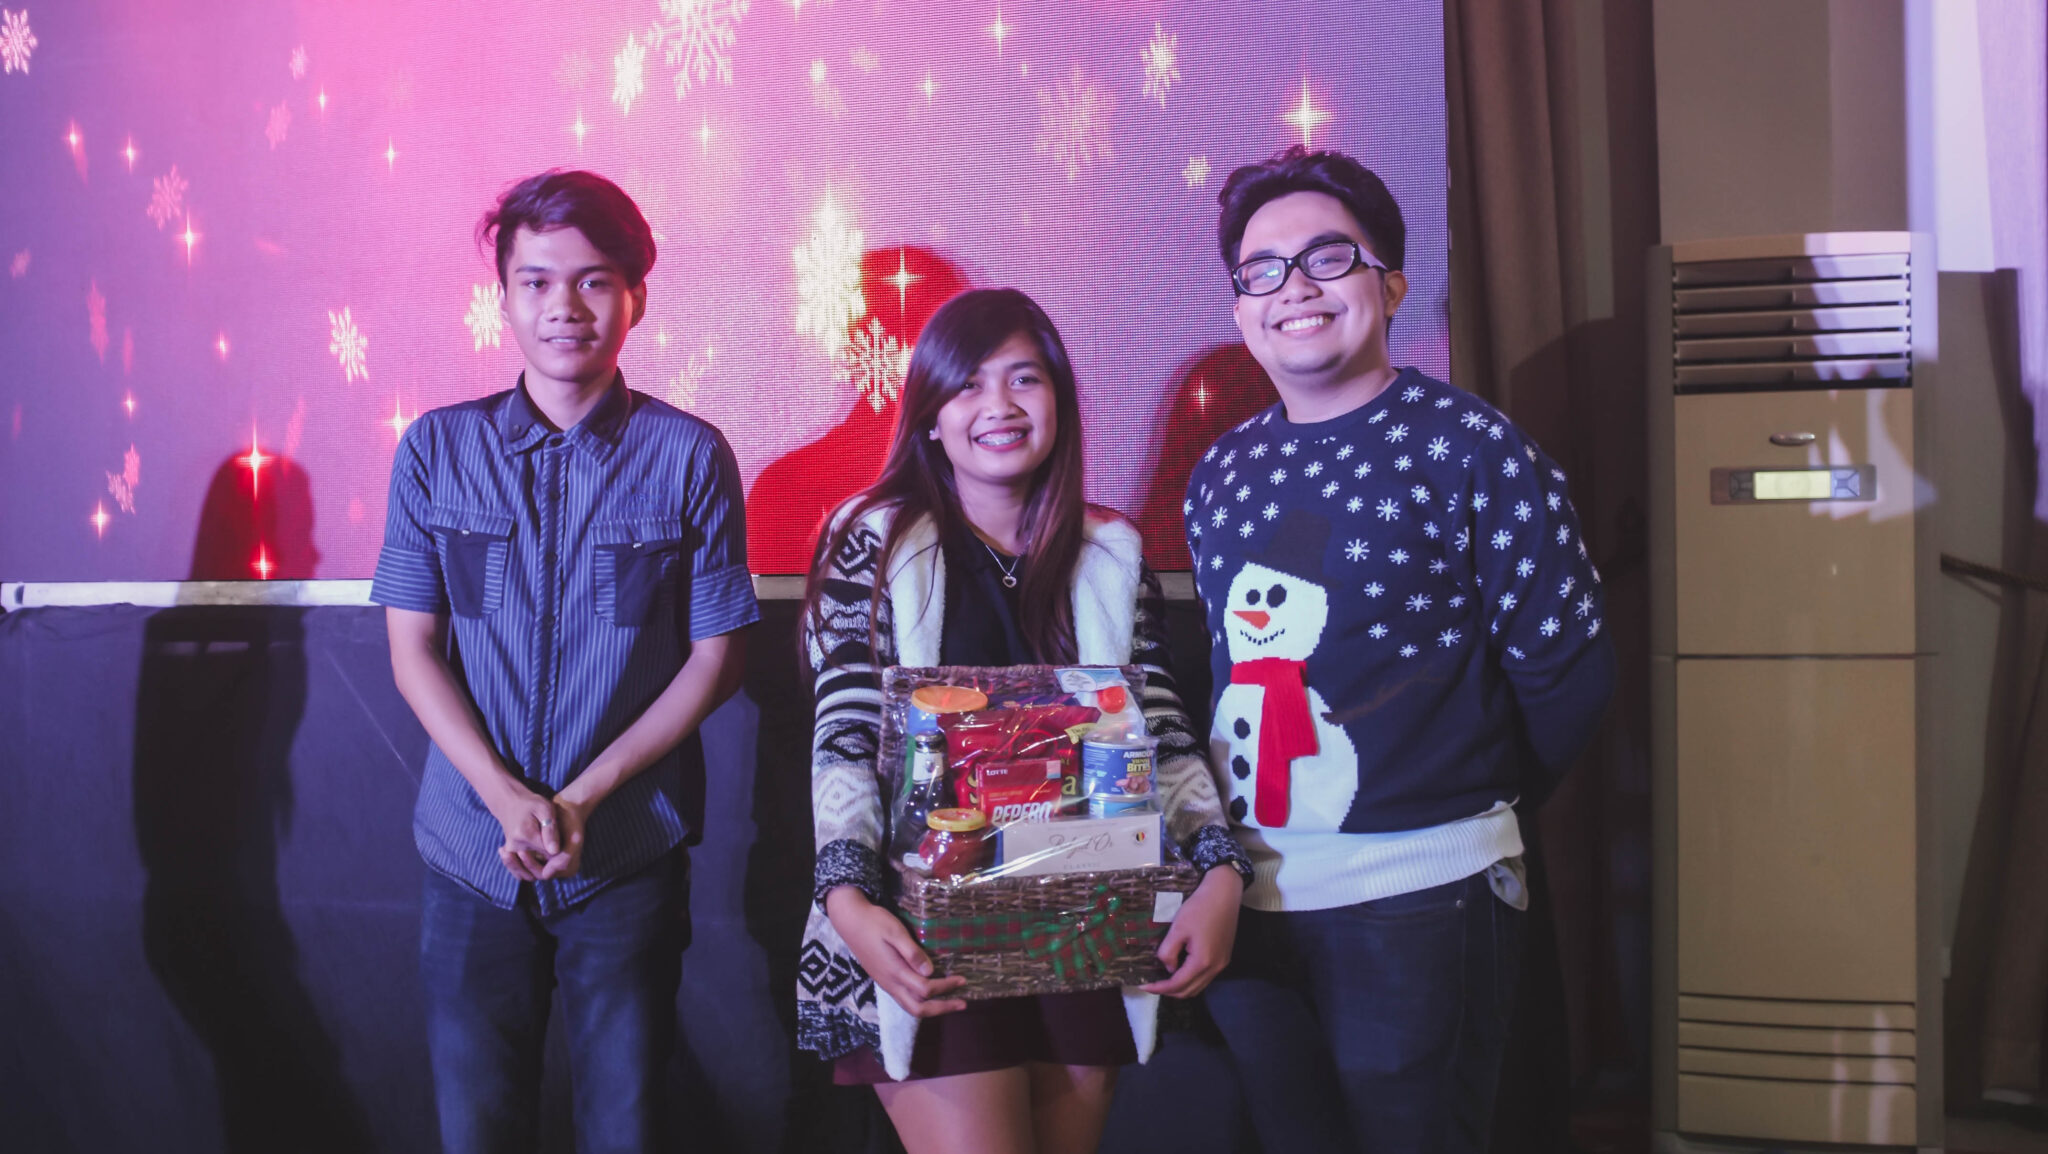 CHRISTMAS PARTY_2018-1294288 x 2416